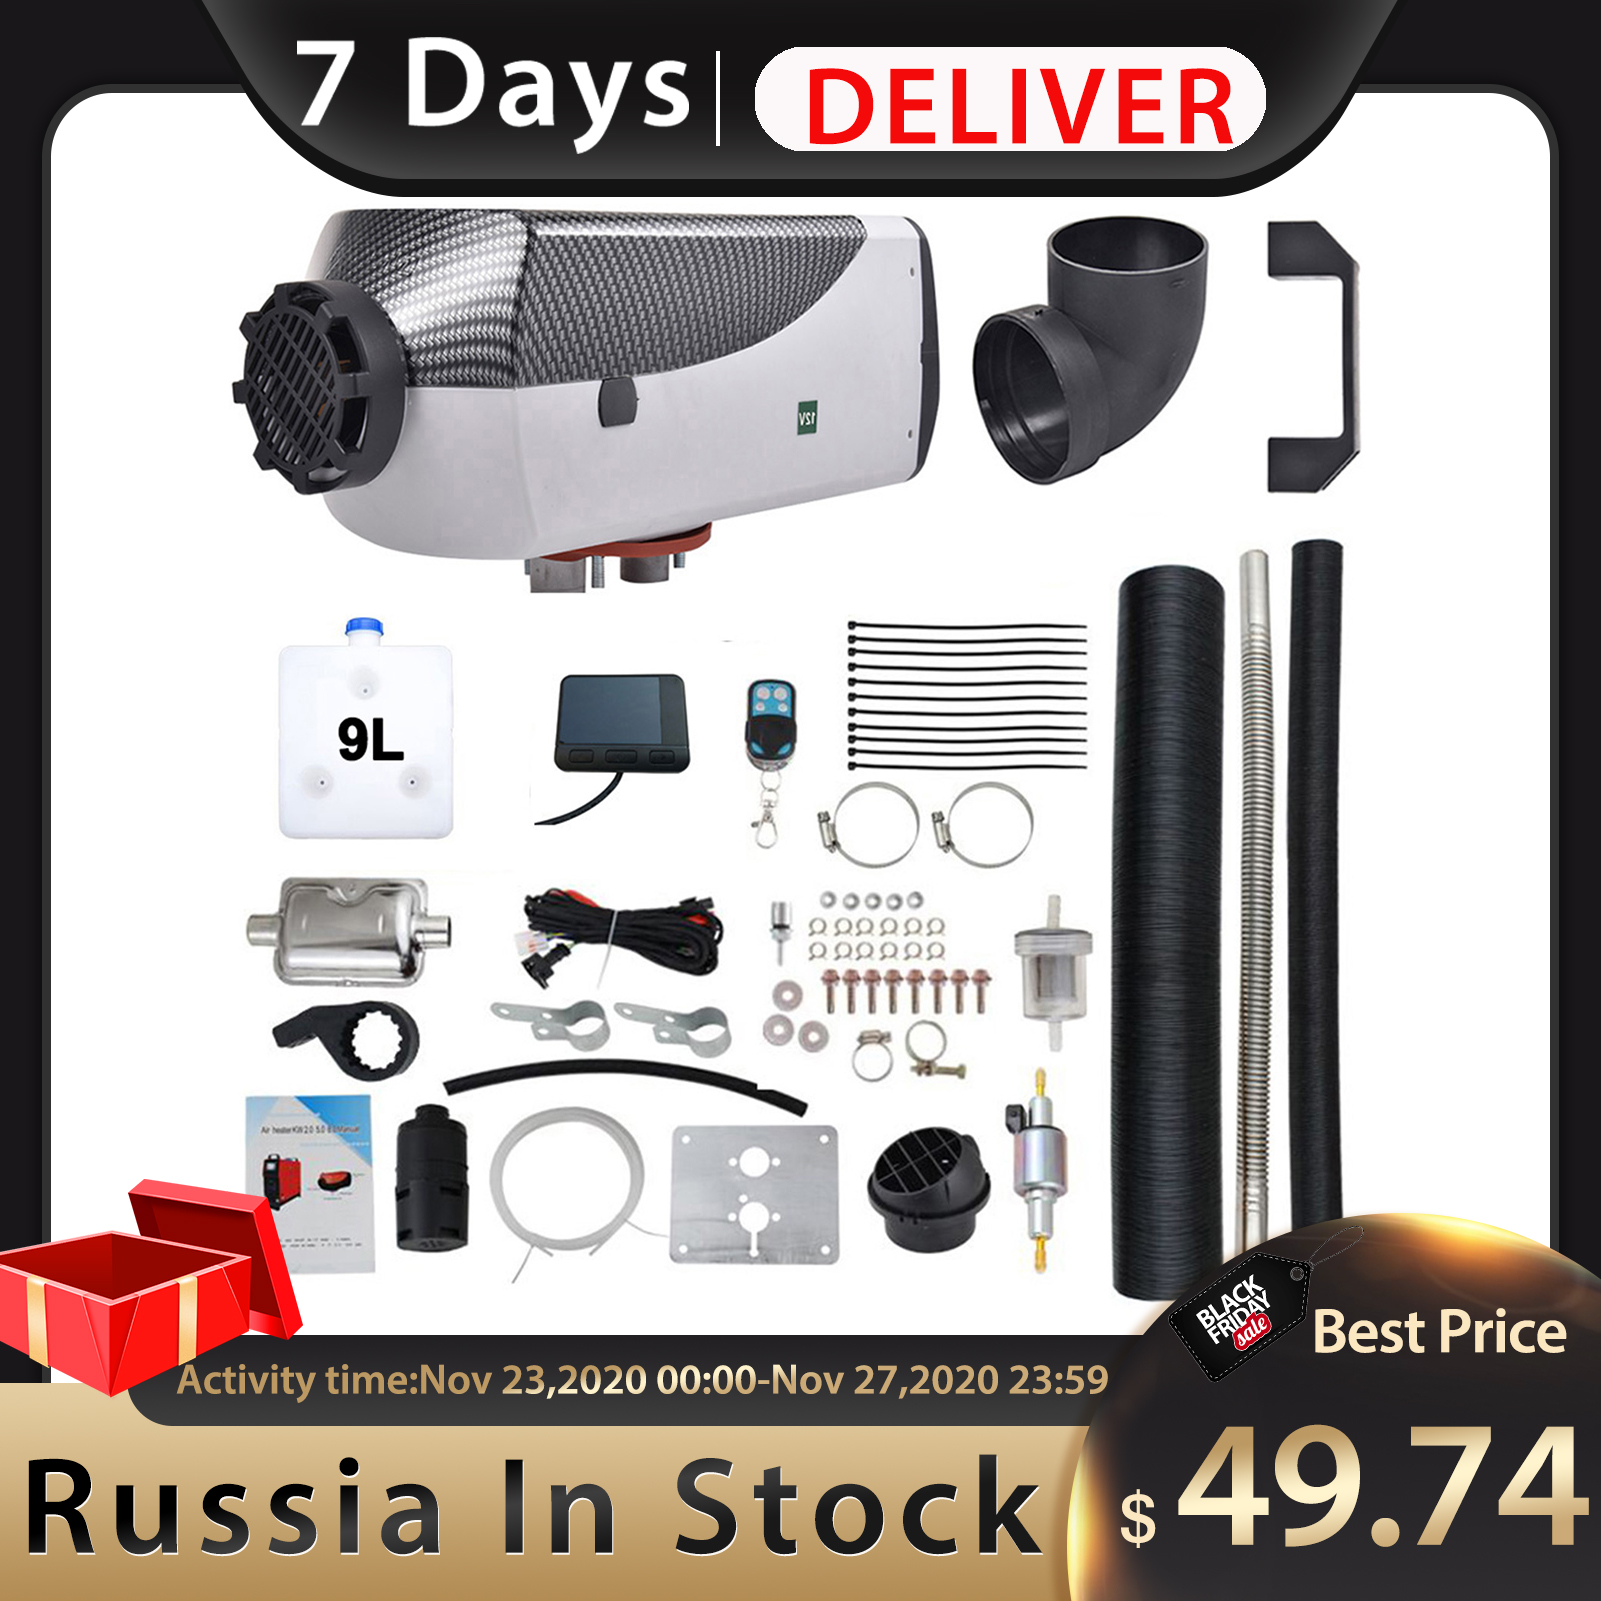 12V 24V 2KW 8KW Car Diesels Air Parking Heater Compact Air Parking Heater Kit Universal For RV Motorhome Trailer|Heating & Fans| - AliExpress